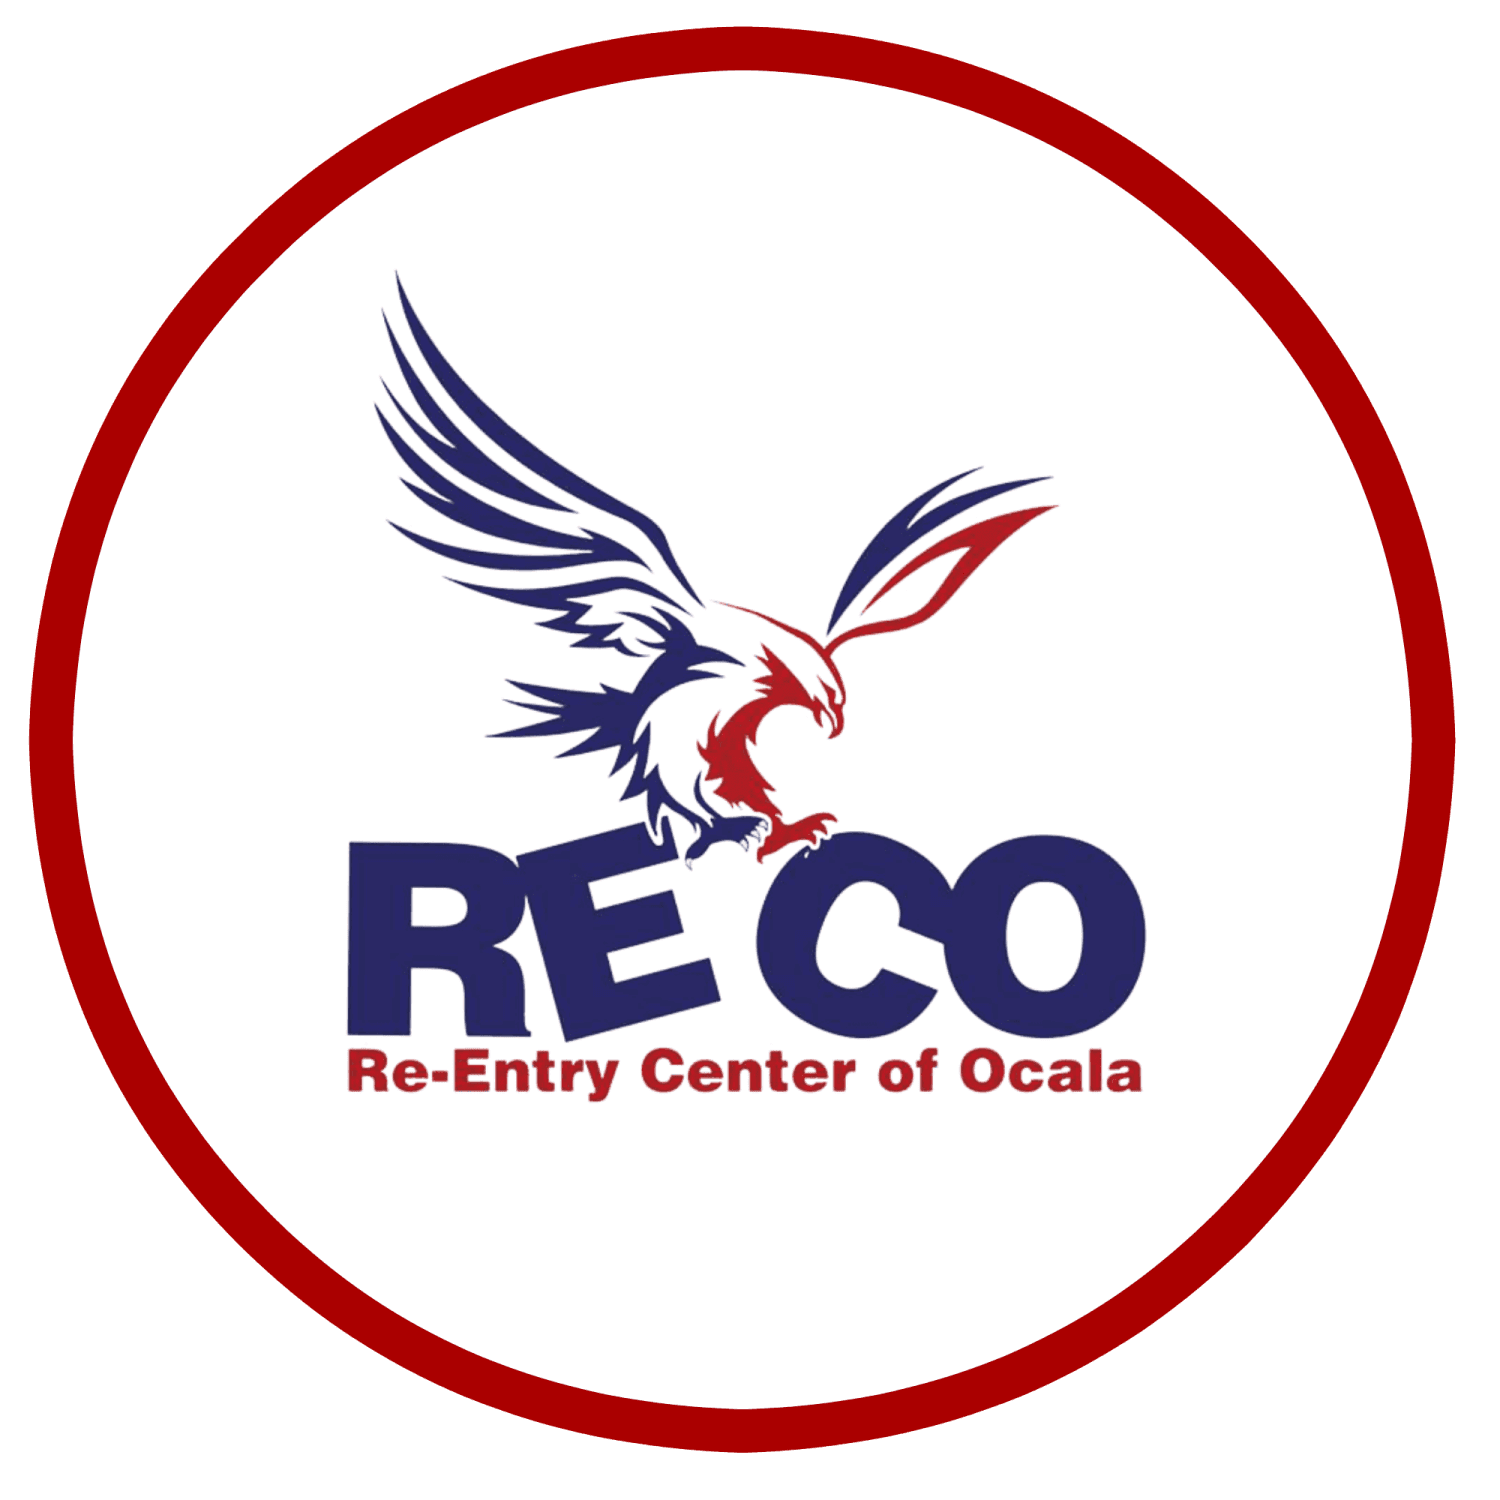 The ReEntry Center of Ocala